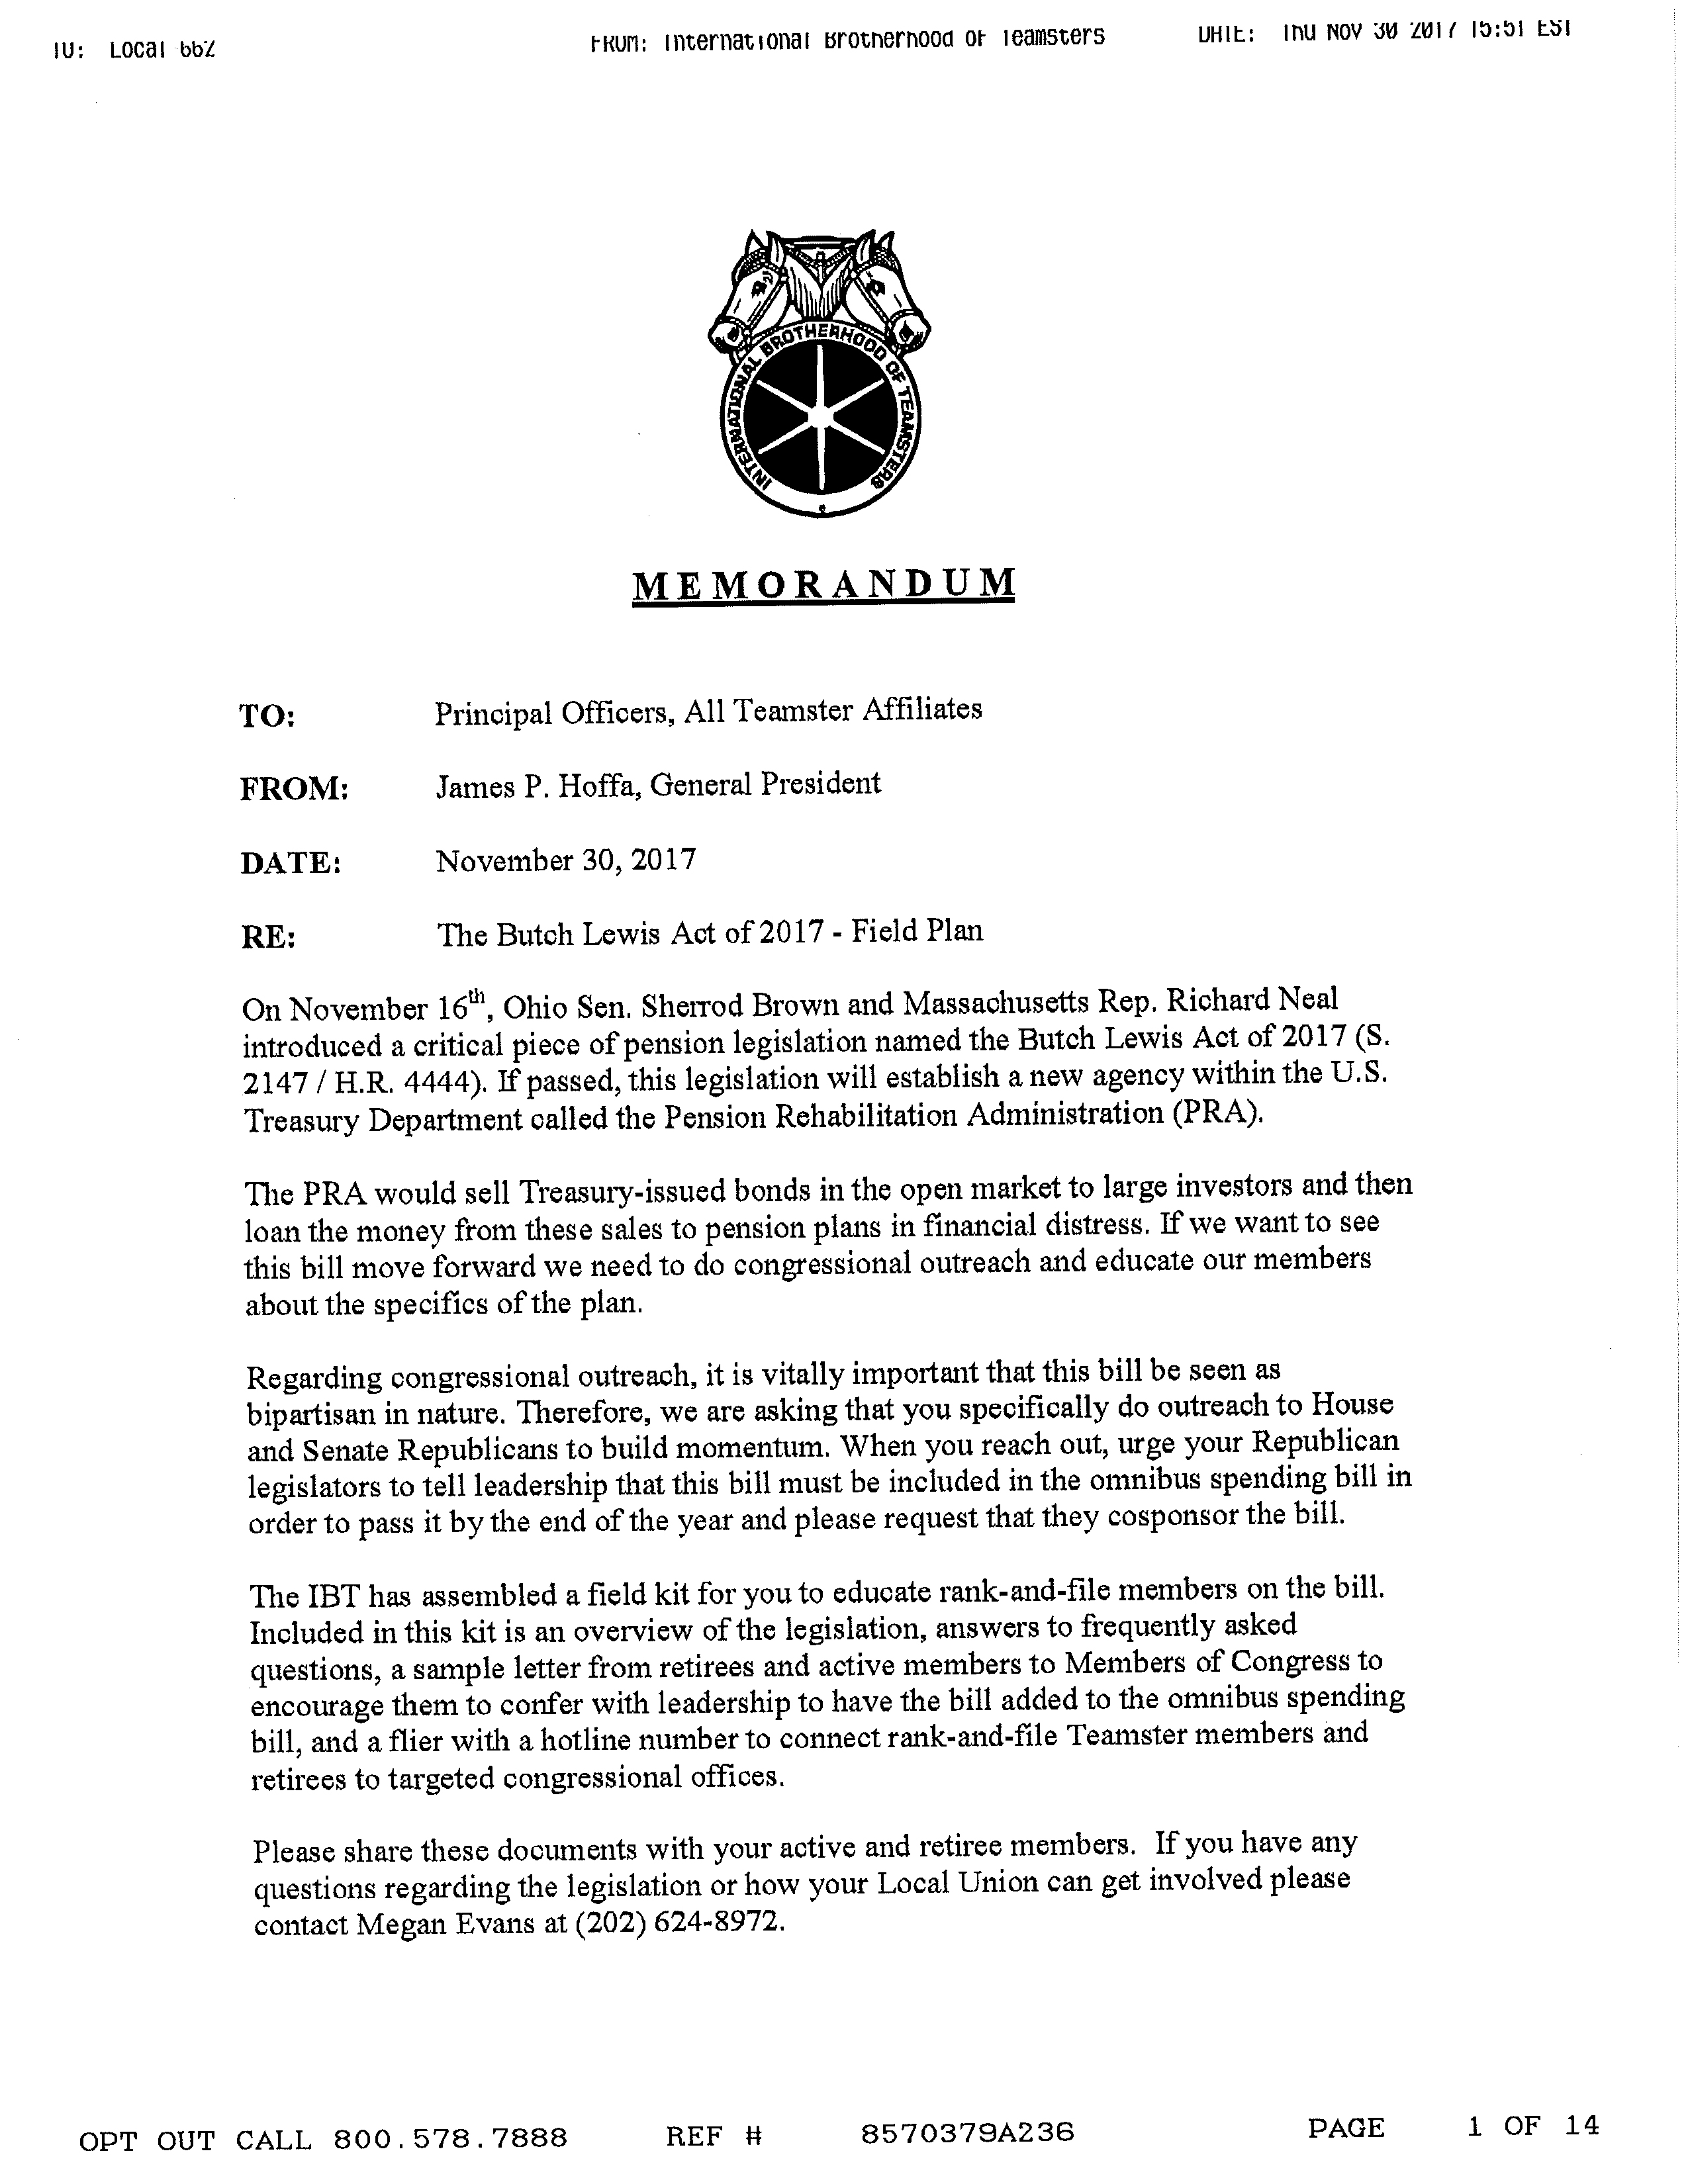 Teamsters Local 662